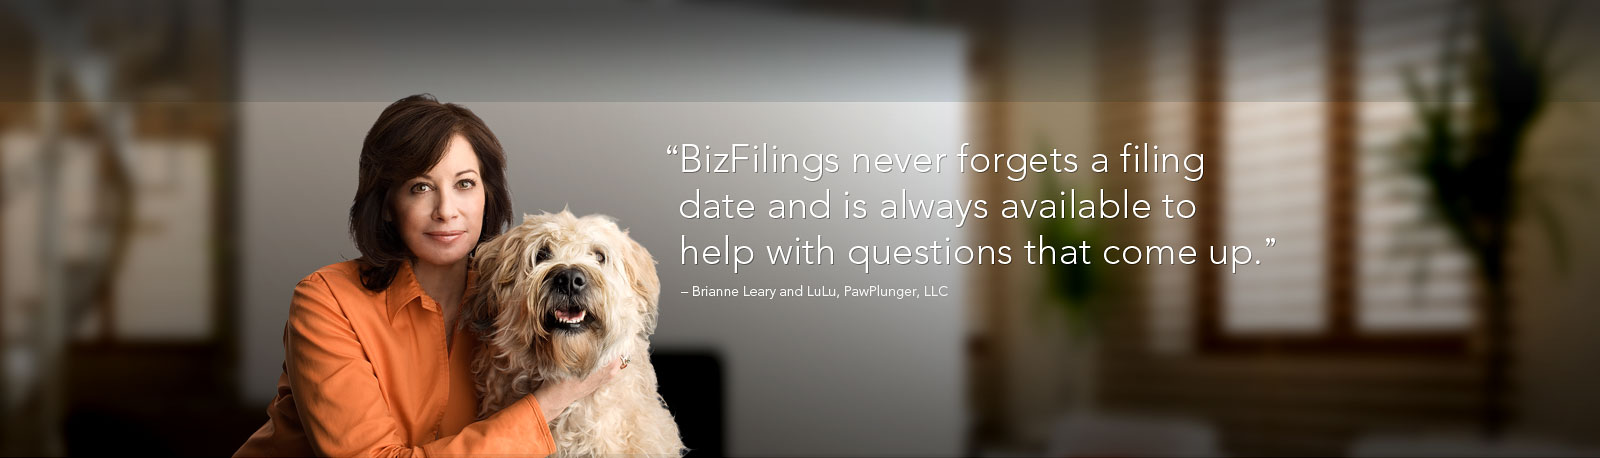 'BizFilings never forgets a filing date and is always available to help with questions that come up.' - Brianne Leary and LuLu, PawPlunger, LLC